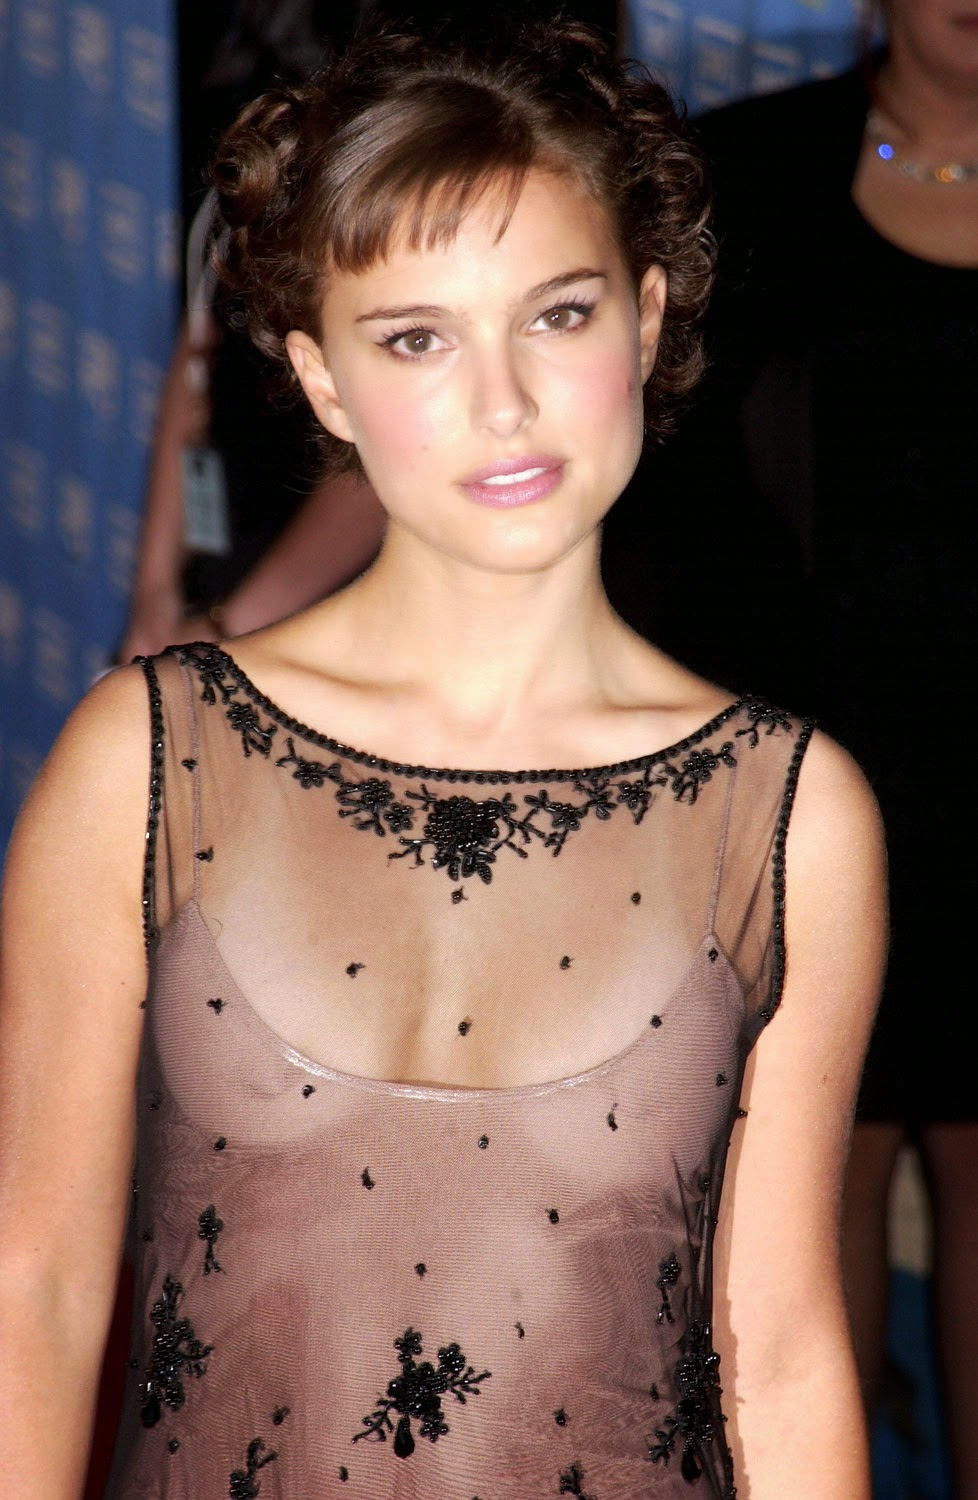 Natalie Portman is an actress with dual American and Israeli citizenship. Her first role was as an orphan taken in by a hitman in the 1994 action film Léon: The Professional, but mainstream success. Children: Aleph Portman-Millepied. Education: Harvard College (1999–2003), more. Spouse: Benjamin Millepied (m. 2012). Height: 1.60 m. Born: June 9, 1981 (age 33), Jerusalem, Israel.